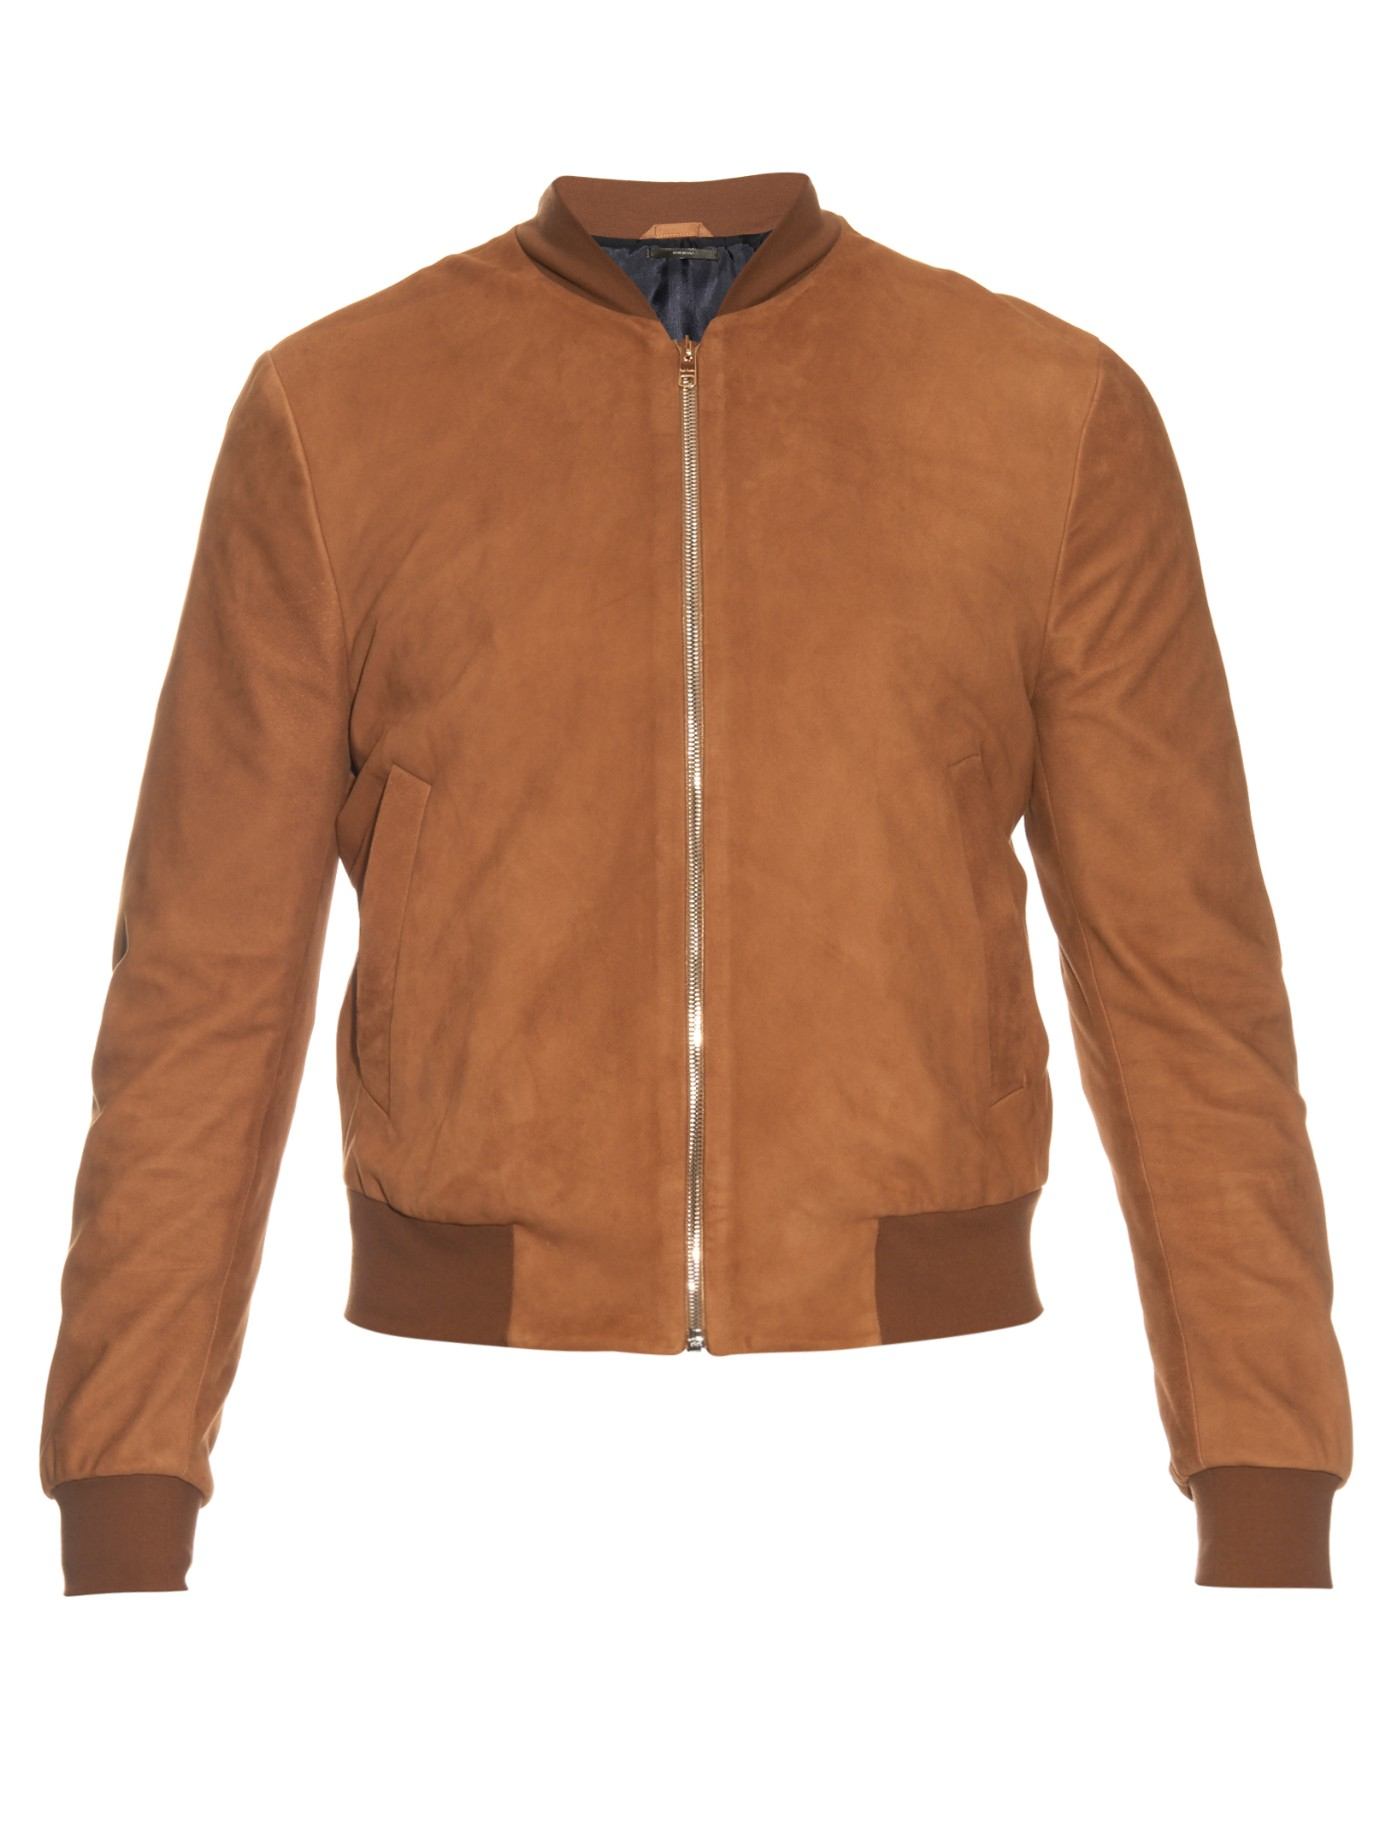 Lyst Paul Smith Suede Bomber Jacket In Brown For Men